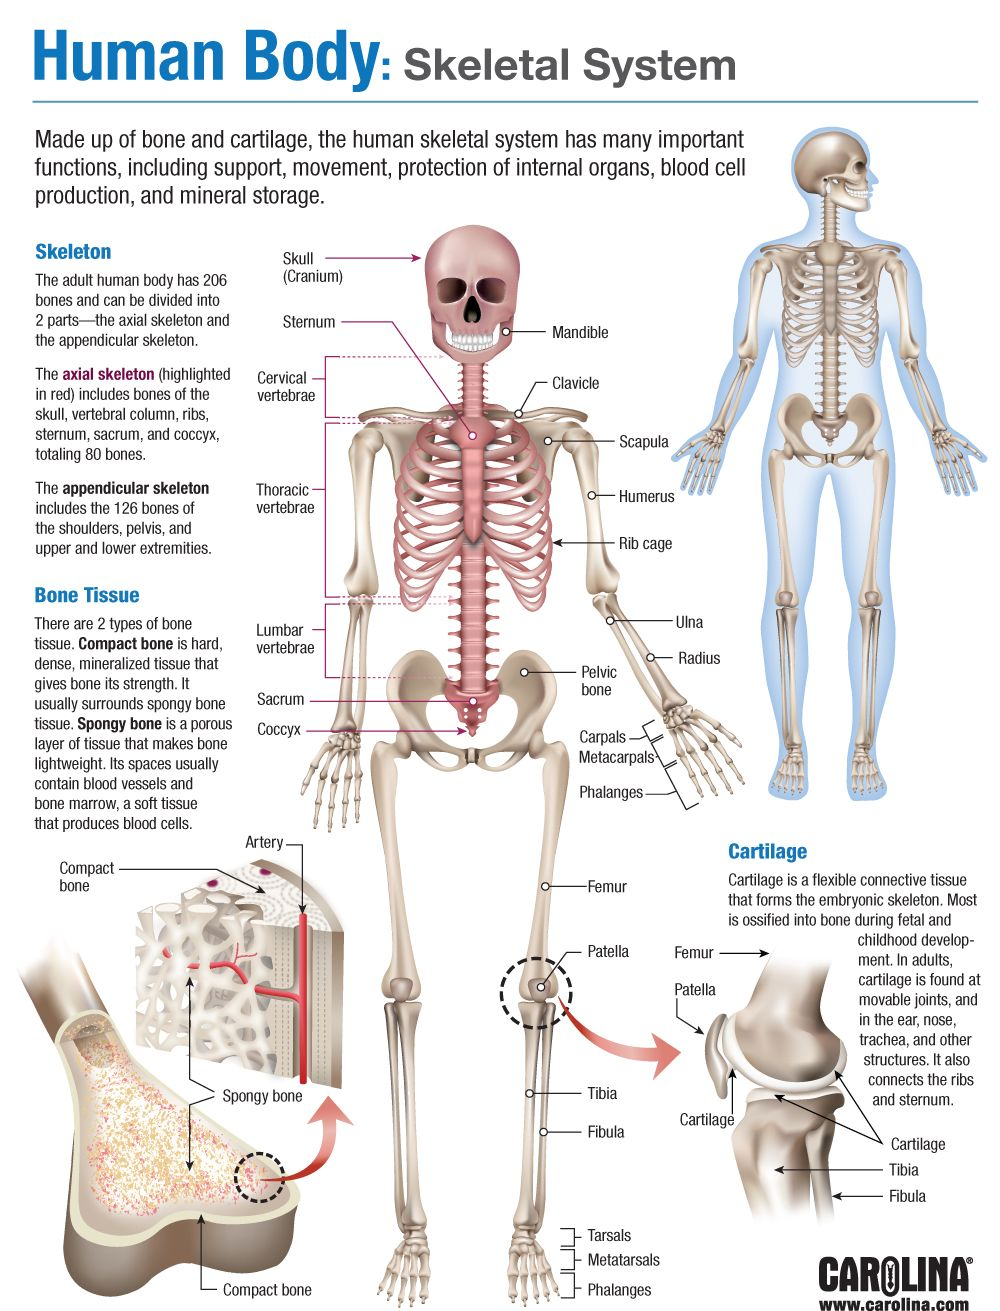 Human Body Skeletal System Carolina